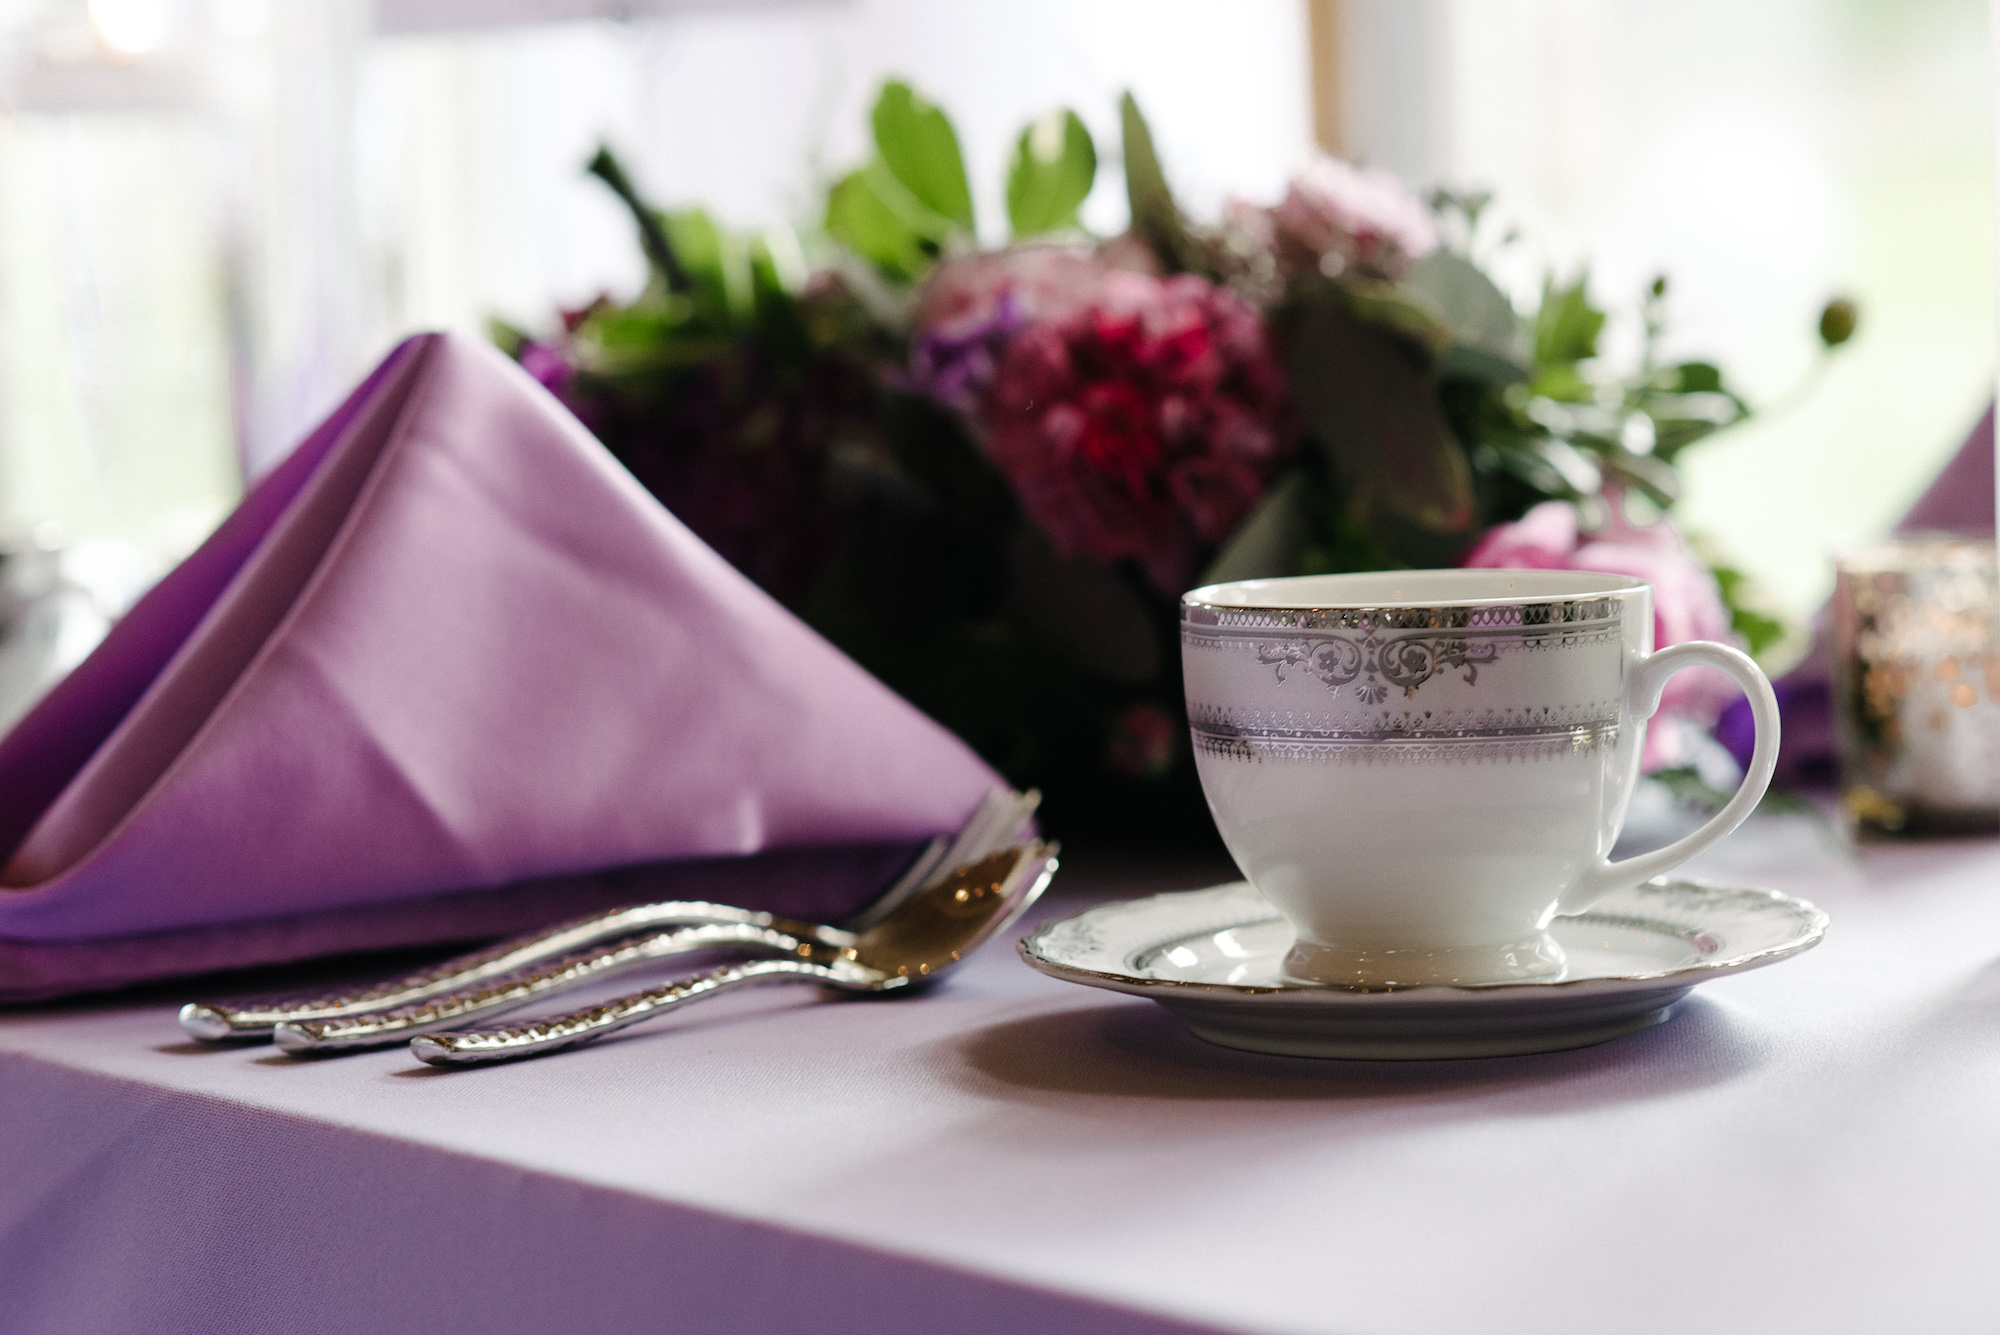 vintage wedding coffee tea cups with matching saucer   lavender napkins and table linen   Dillinger Studios Minneapolis Photographer   Mexican American fusion wedding   Sixpence Events & Planning Minnesota wedding planner .jpg